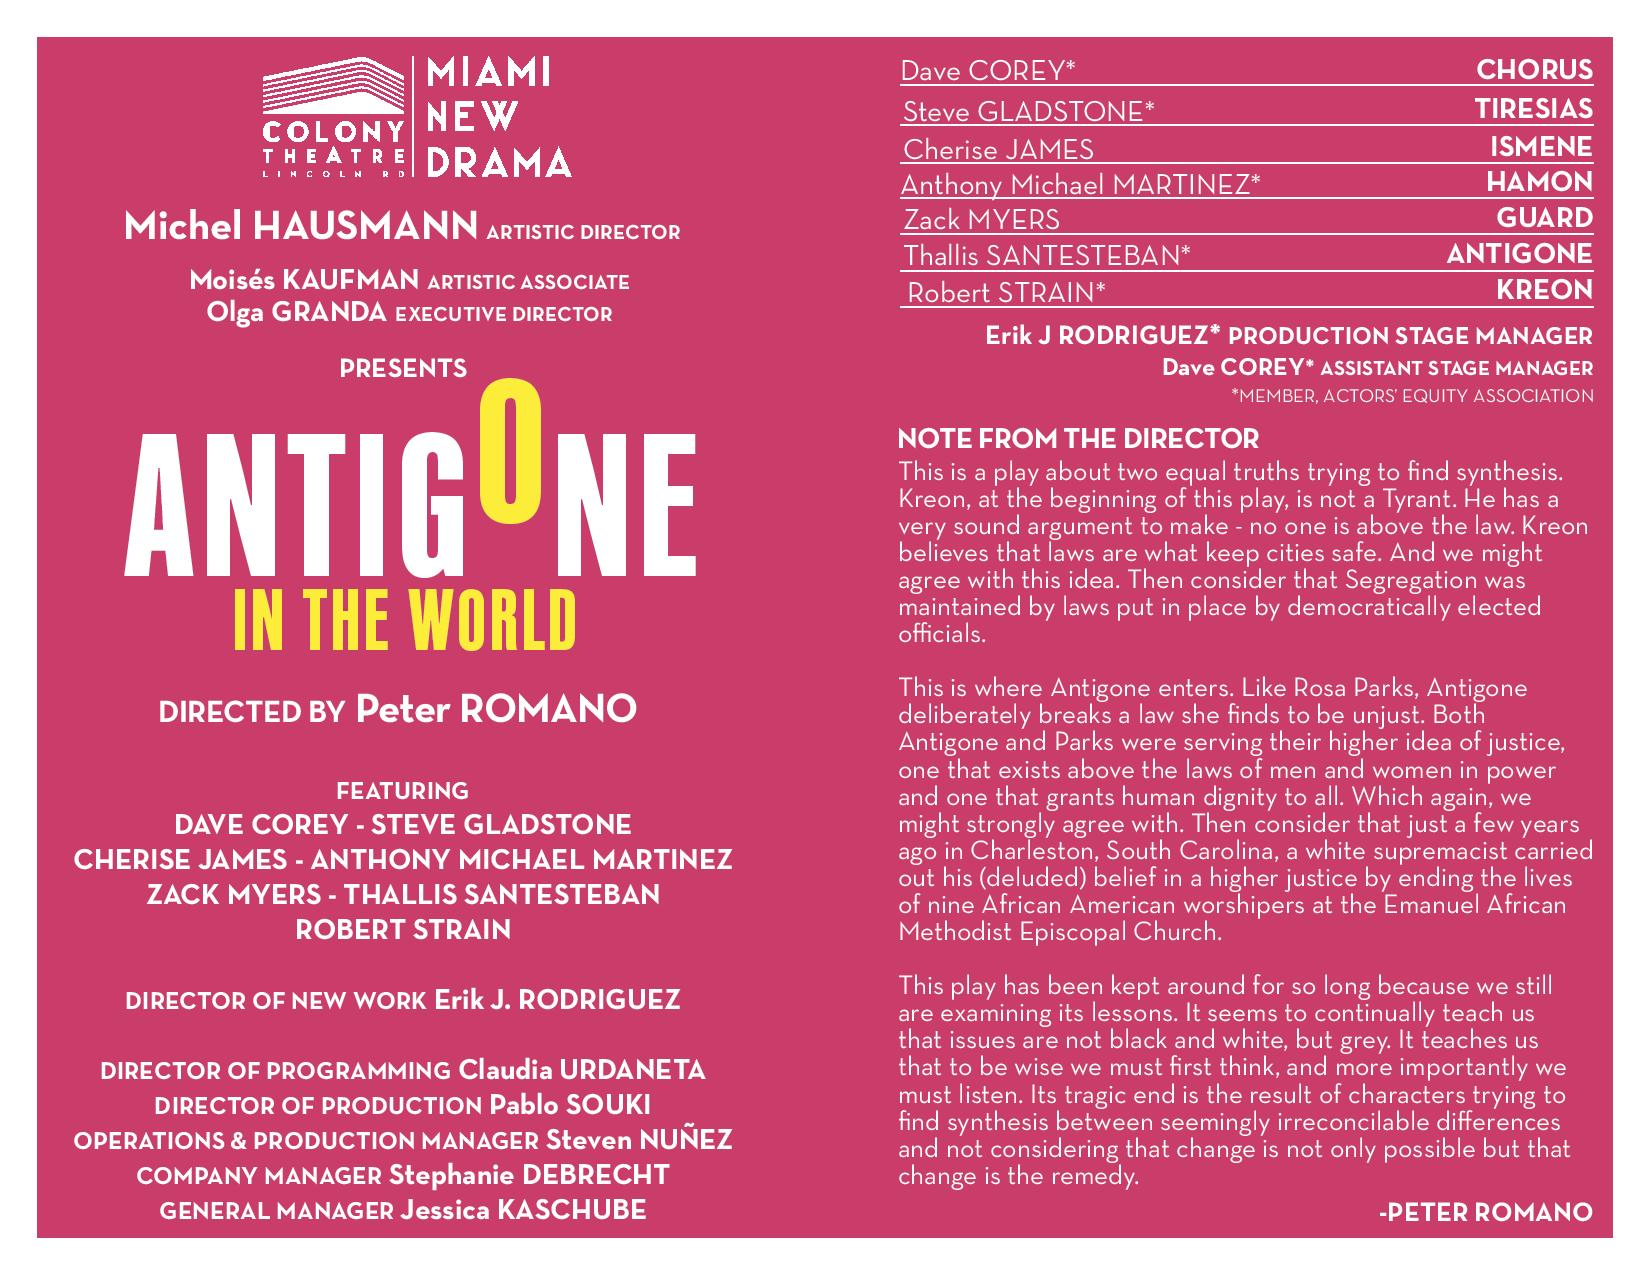 Copy of Antigone Program-page-002.jpg